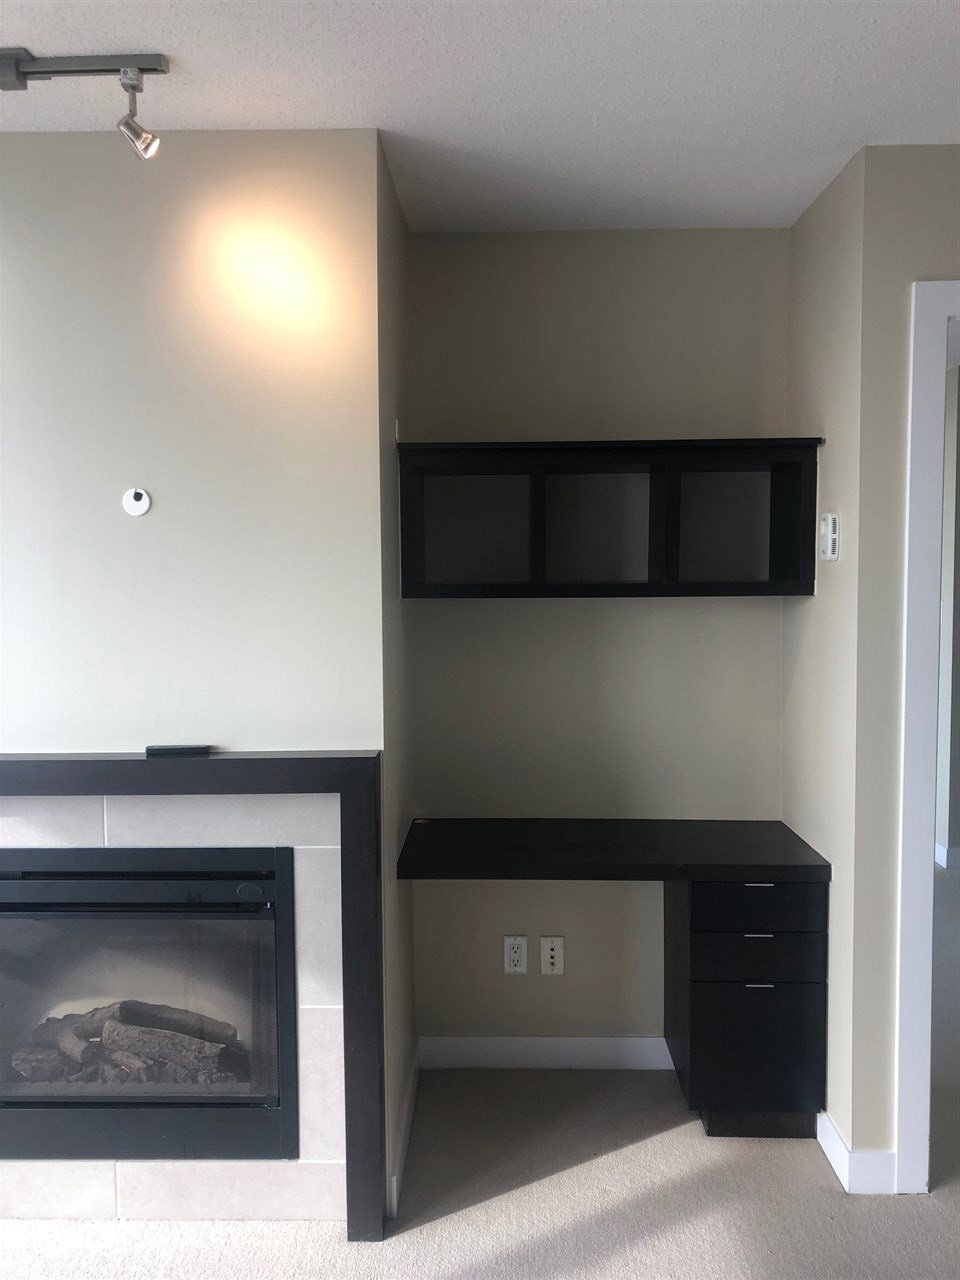 """Photo 11: Photos: 2206 7328 ARCOLA Street in Burnaby: Highgate Condo for sale in """"ESPRIT SOUTH"""" (Burnaby South)  : MLS®# R2435579"""